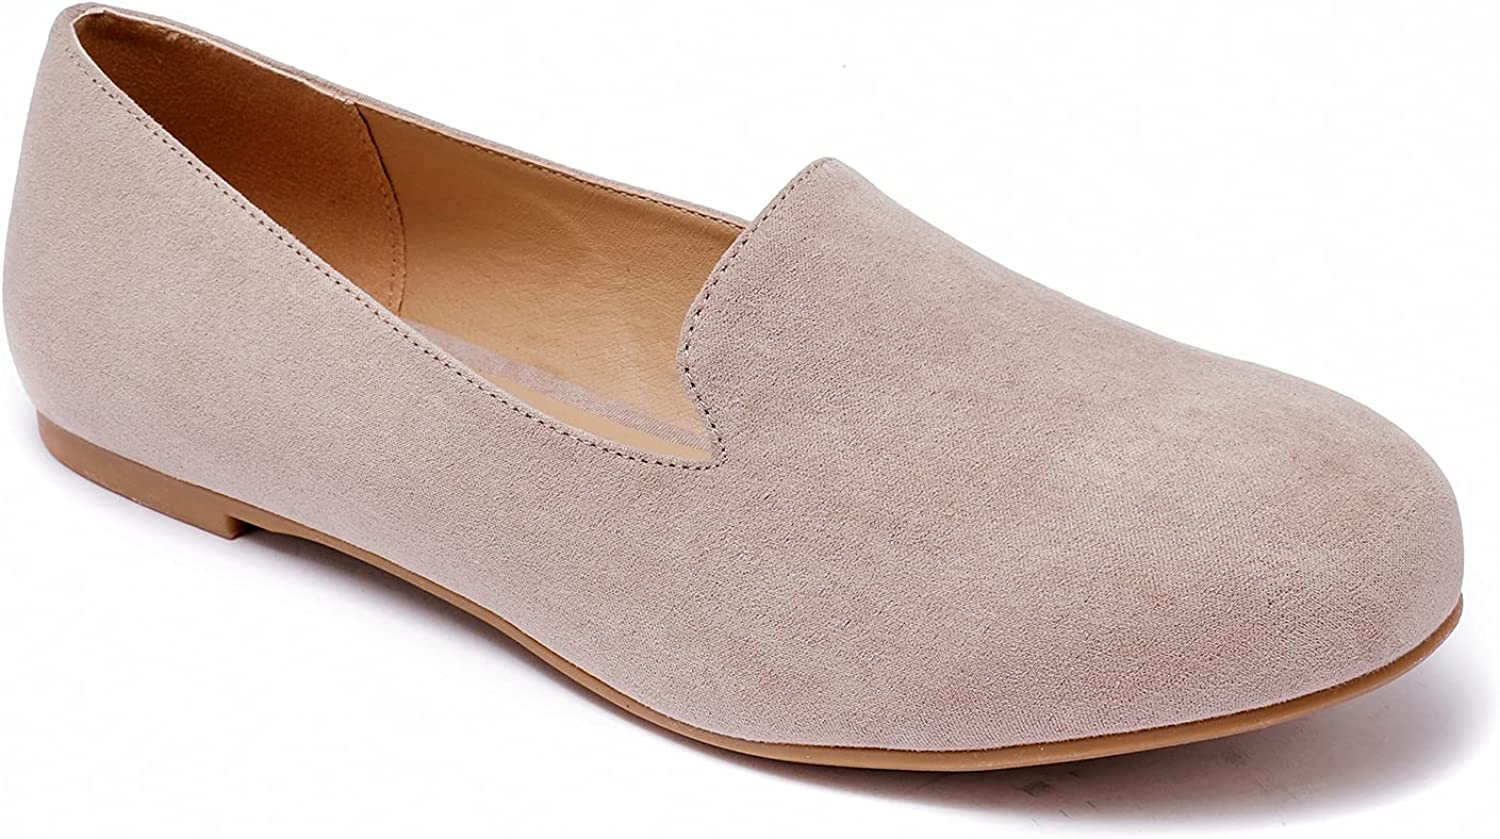 Luoika Women's Wide Width New item Special sale item Flat Shoes Ba Slip Casual On - Comfort